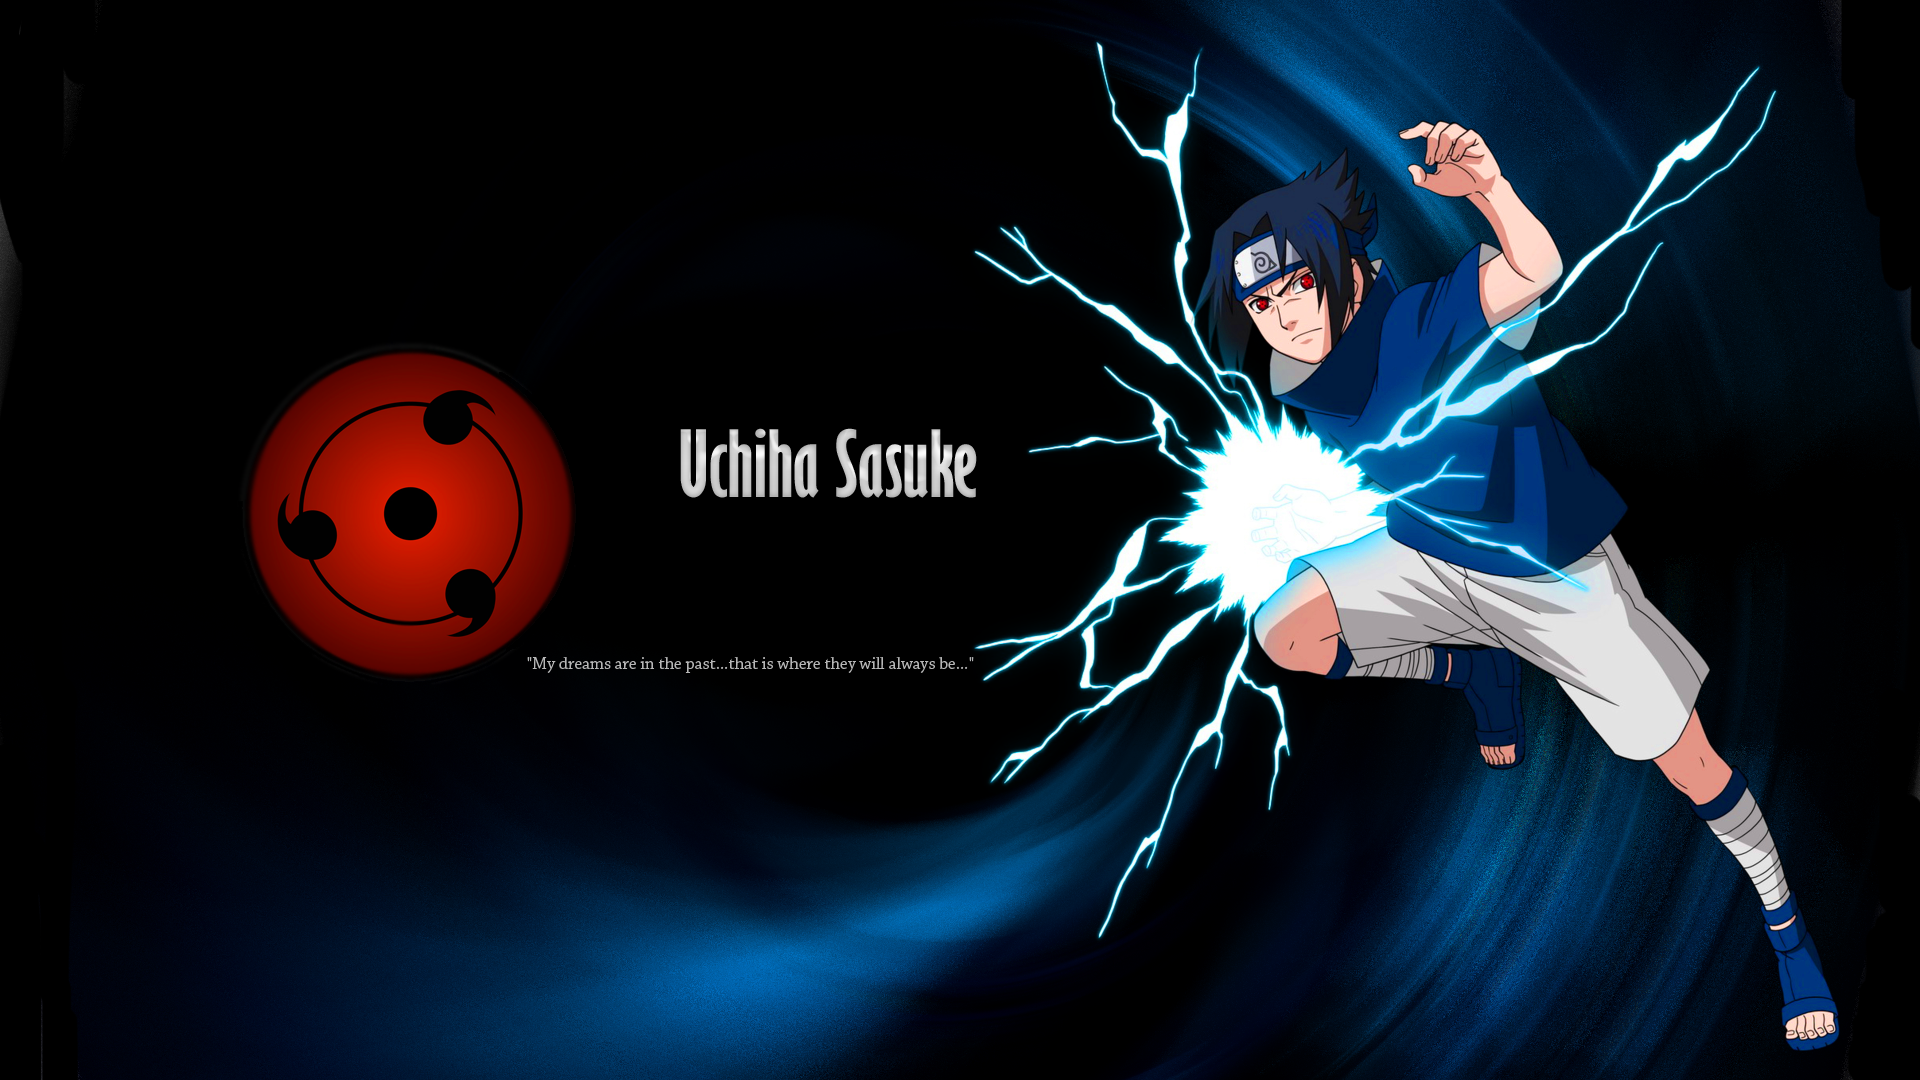 Naruto Live Png For Pc Free Naruto Live For Pc Png Transparent